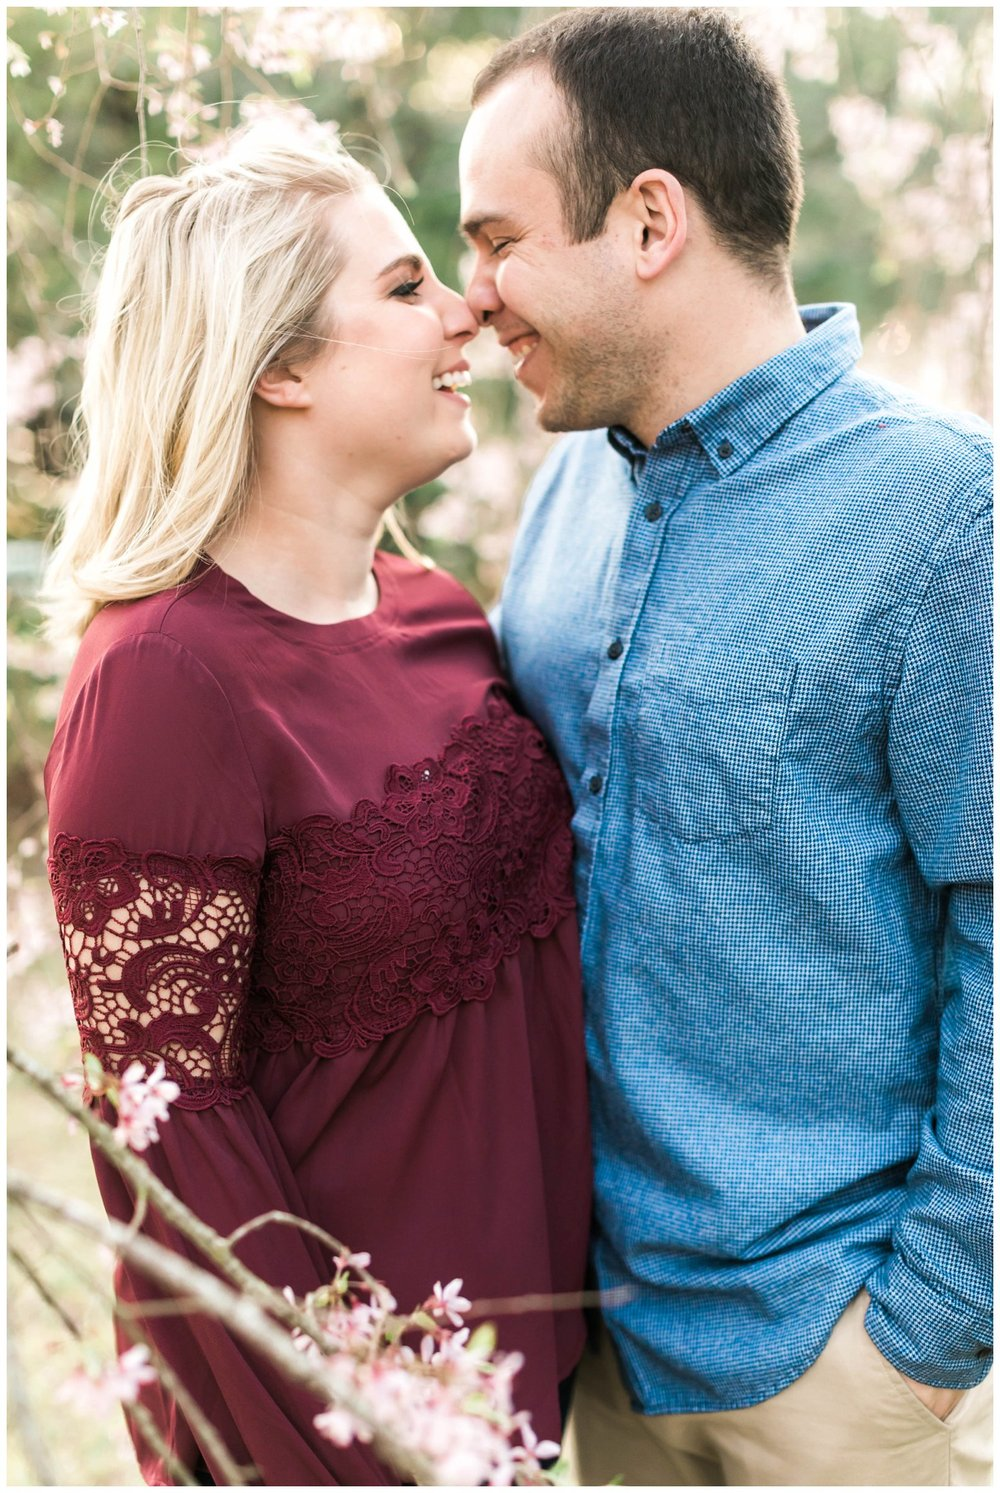 MagdalenaStudios_Engagement_April 2017_0014.jpg